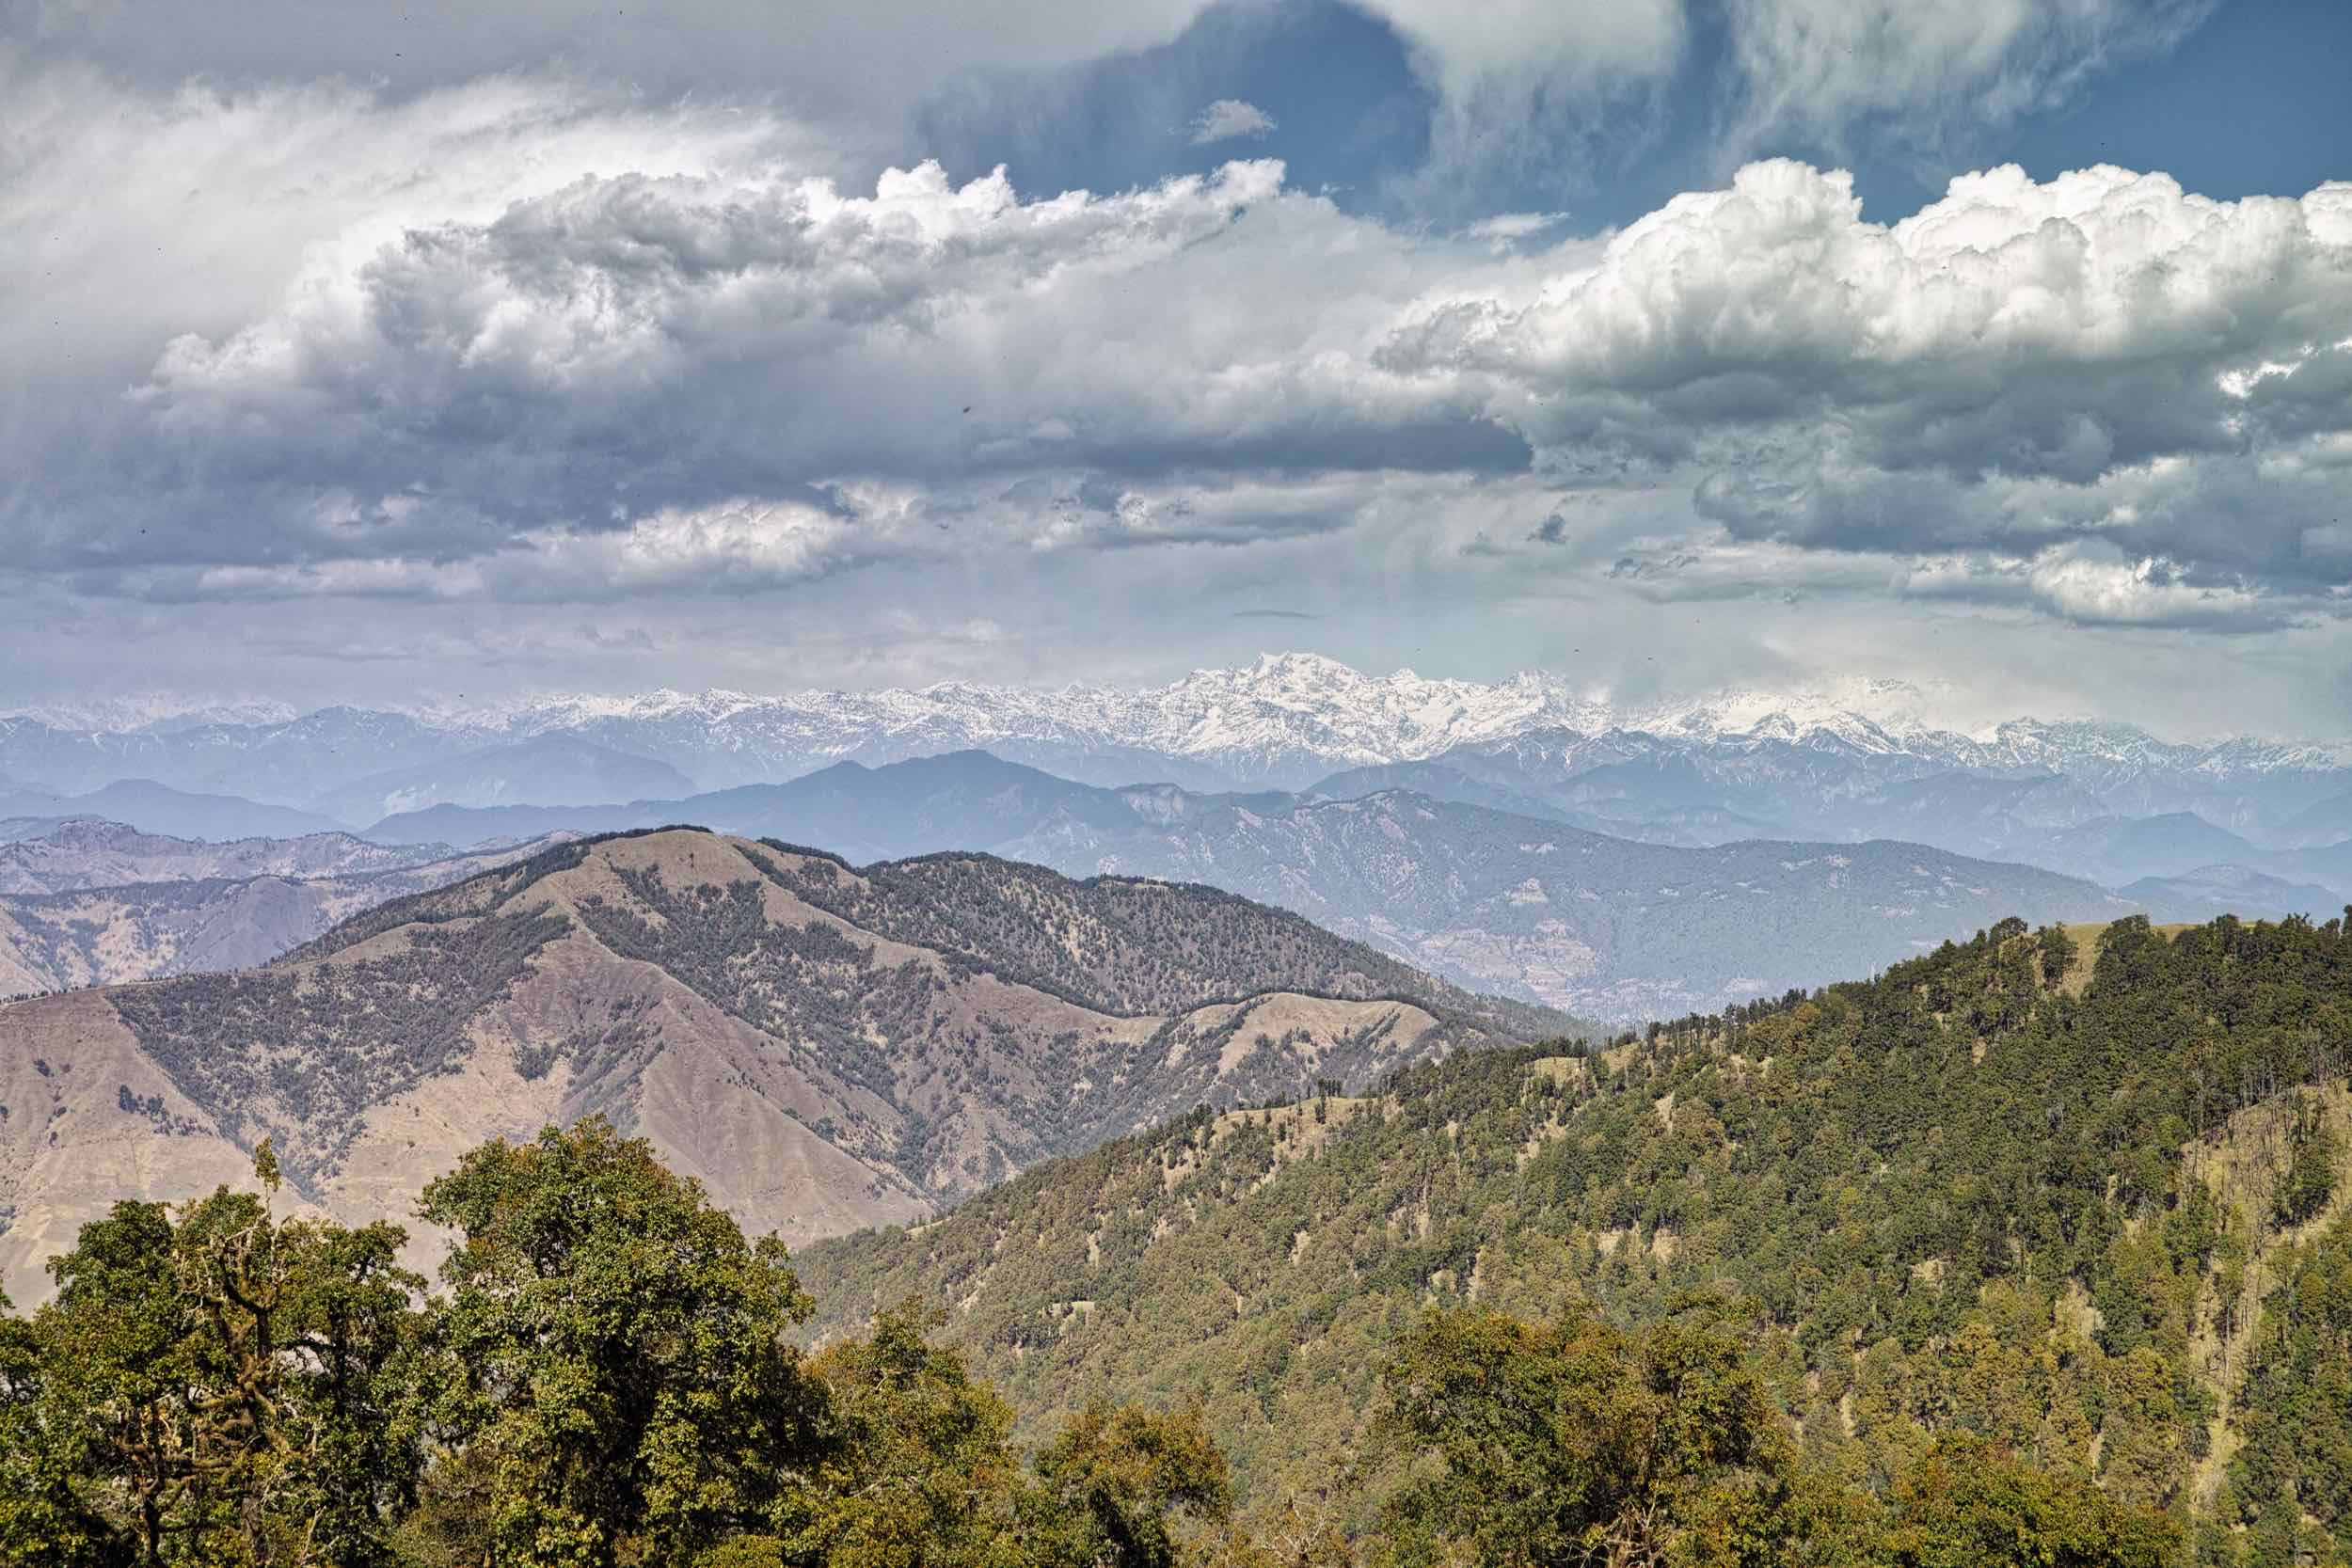 Himalayan views are just fantastic from Nag Tibba. The entire Bandarpunch and Gangotri range lie spread before you. The best time is early morning till afternoon, after which clouds often roll in to obscure the Himalayan peaks.